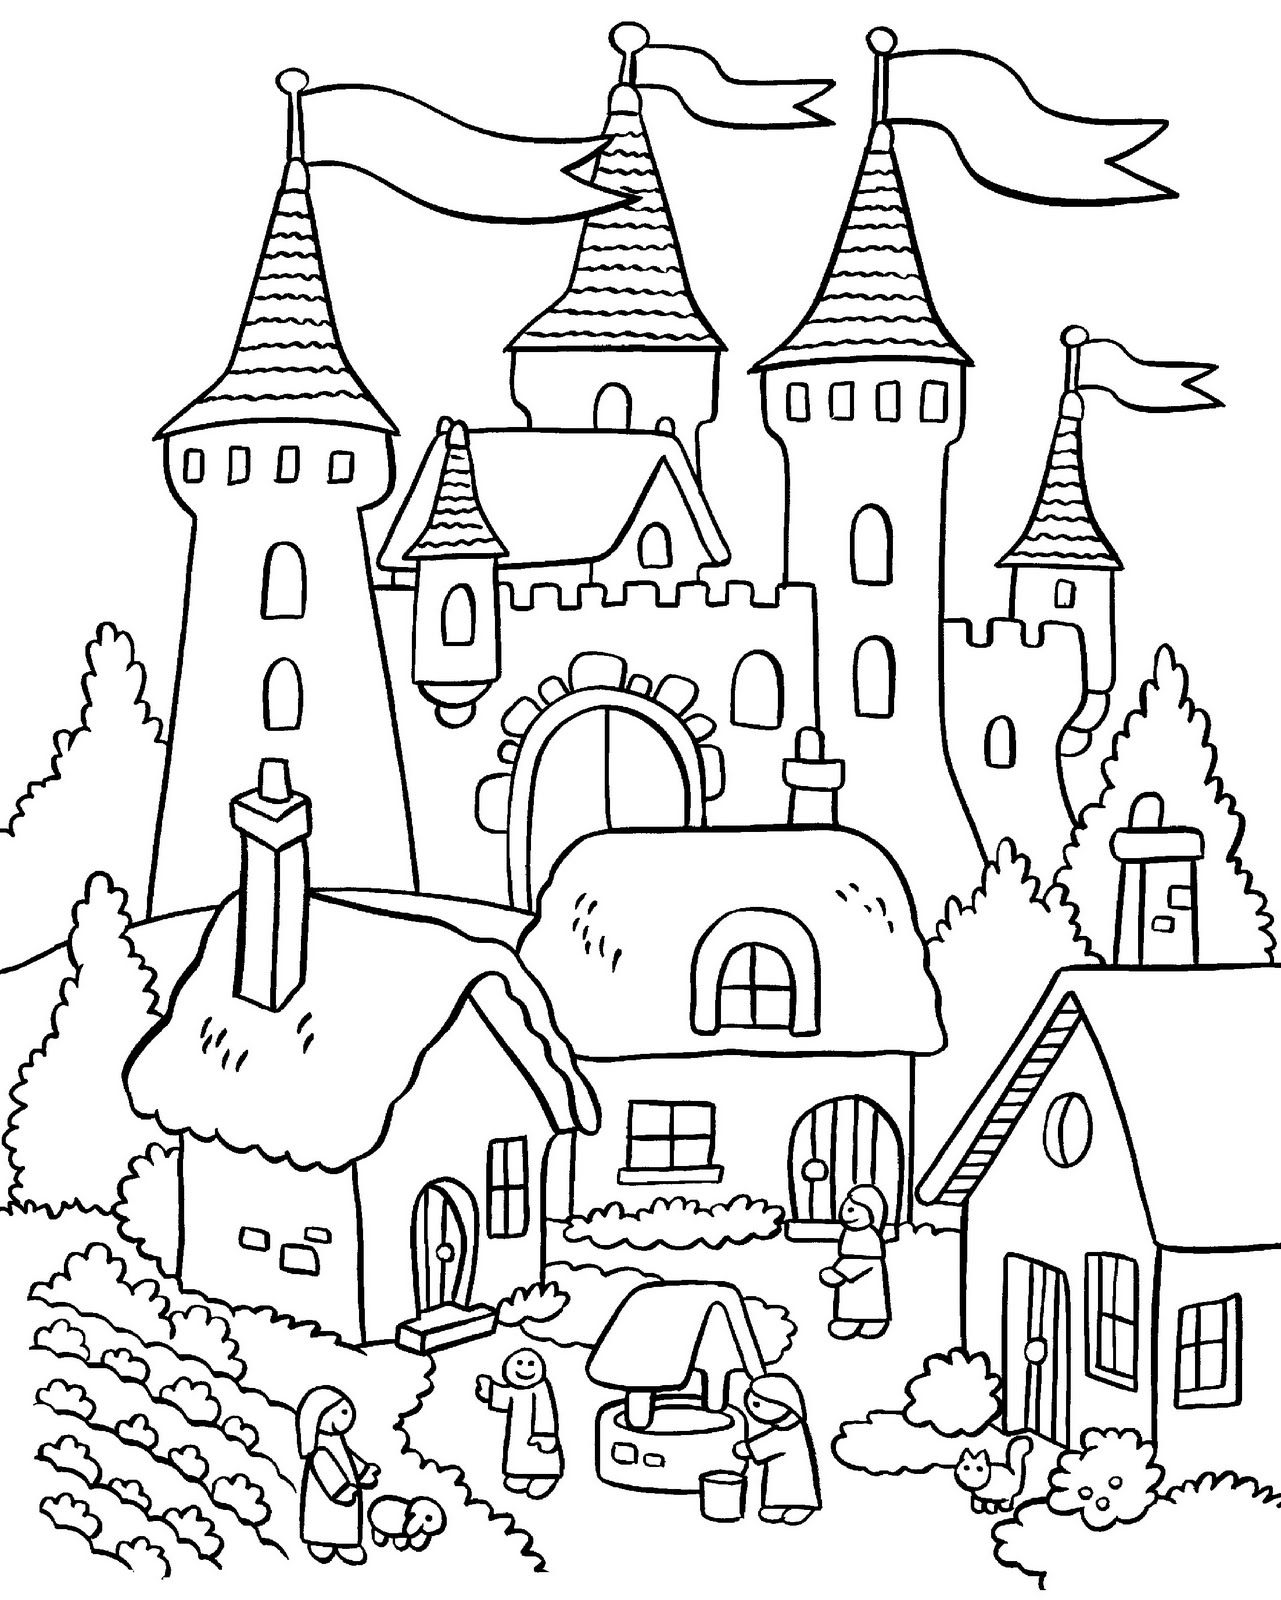 My Little House Anna And The Flower Garden Coloring Pages Castle Coloring Page Elsa Coloring Pages Princess Coloring Pages